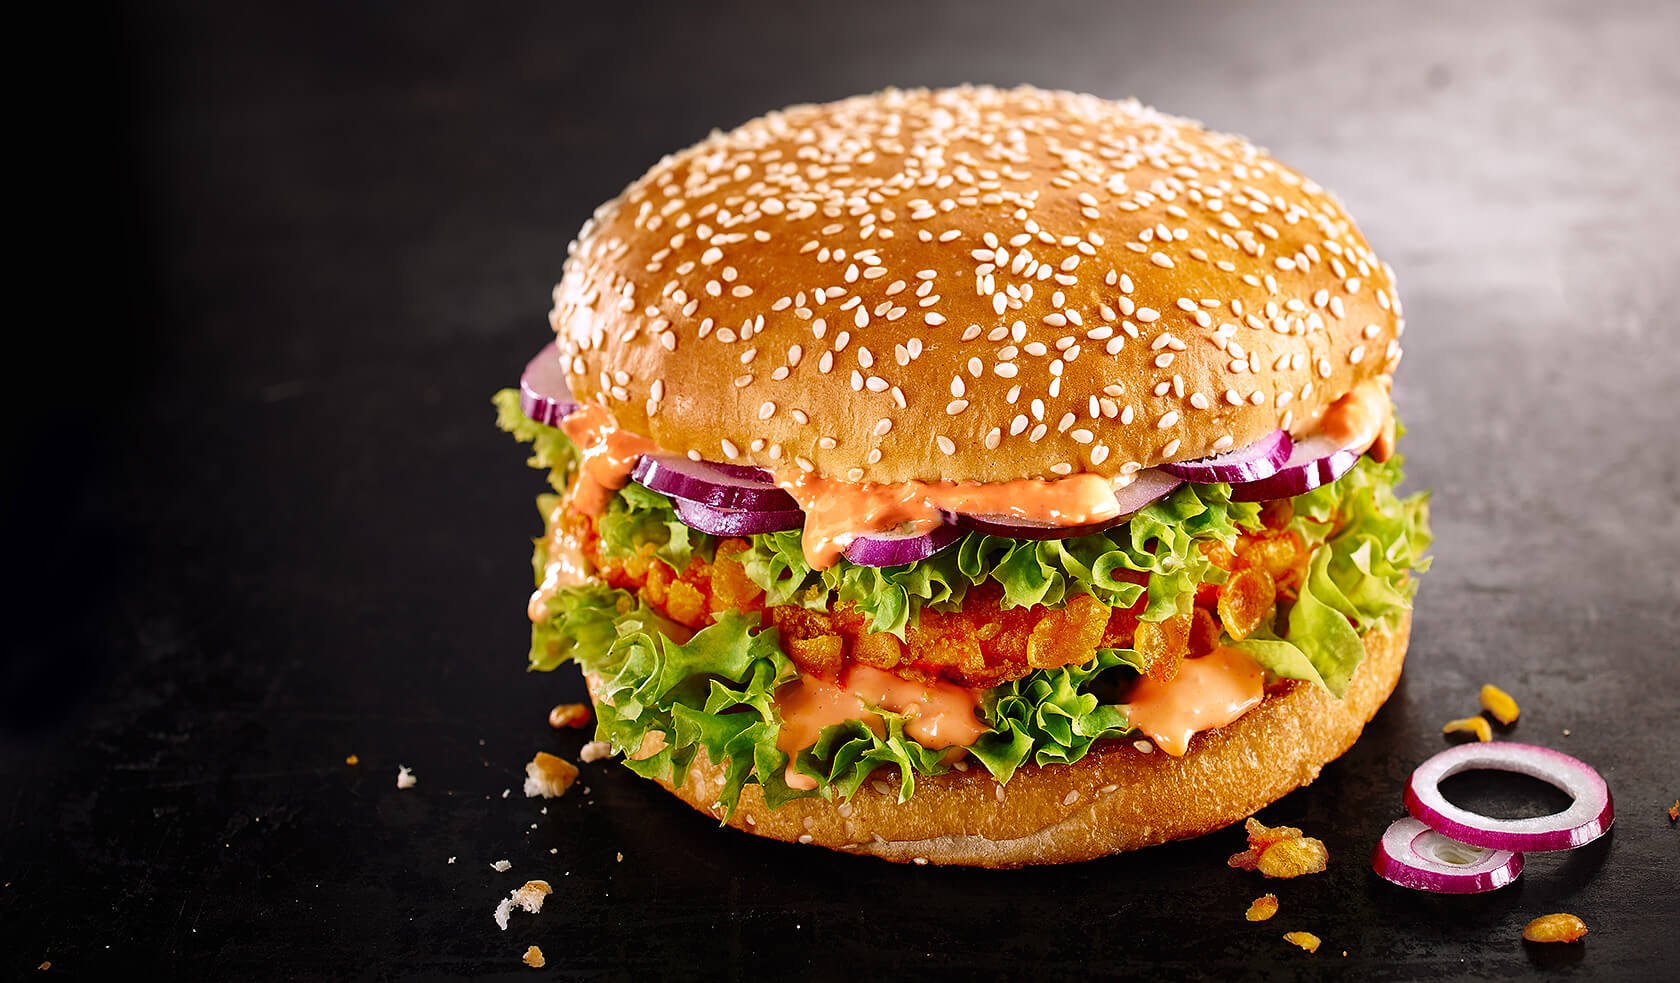 Burger Crunchy Chicken